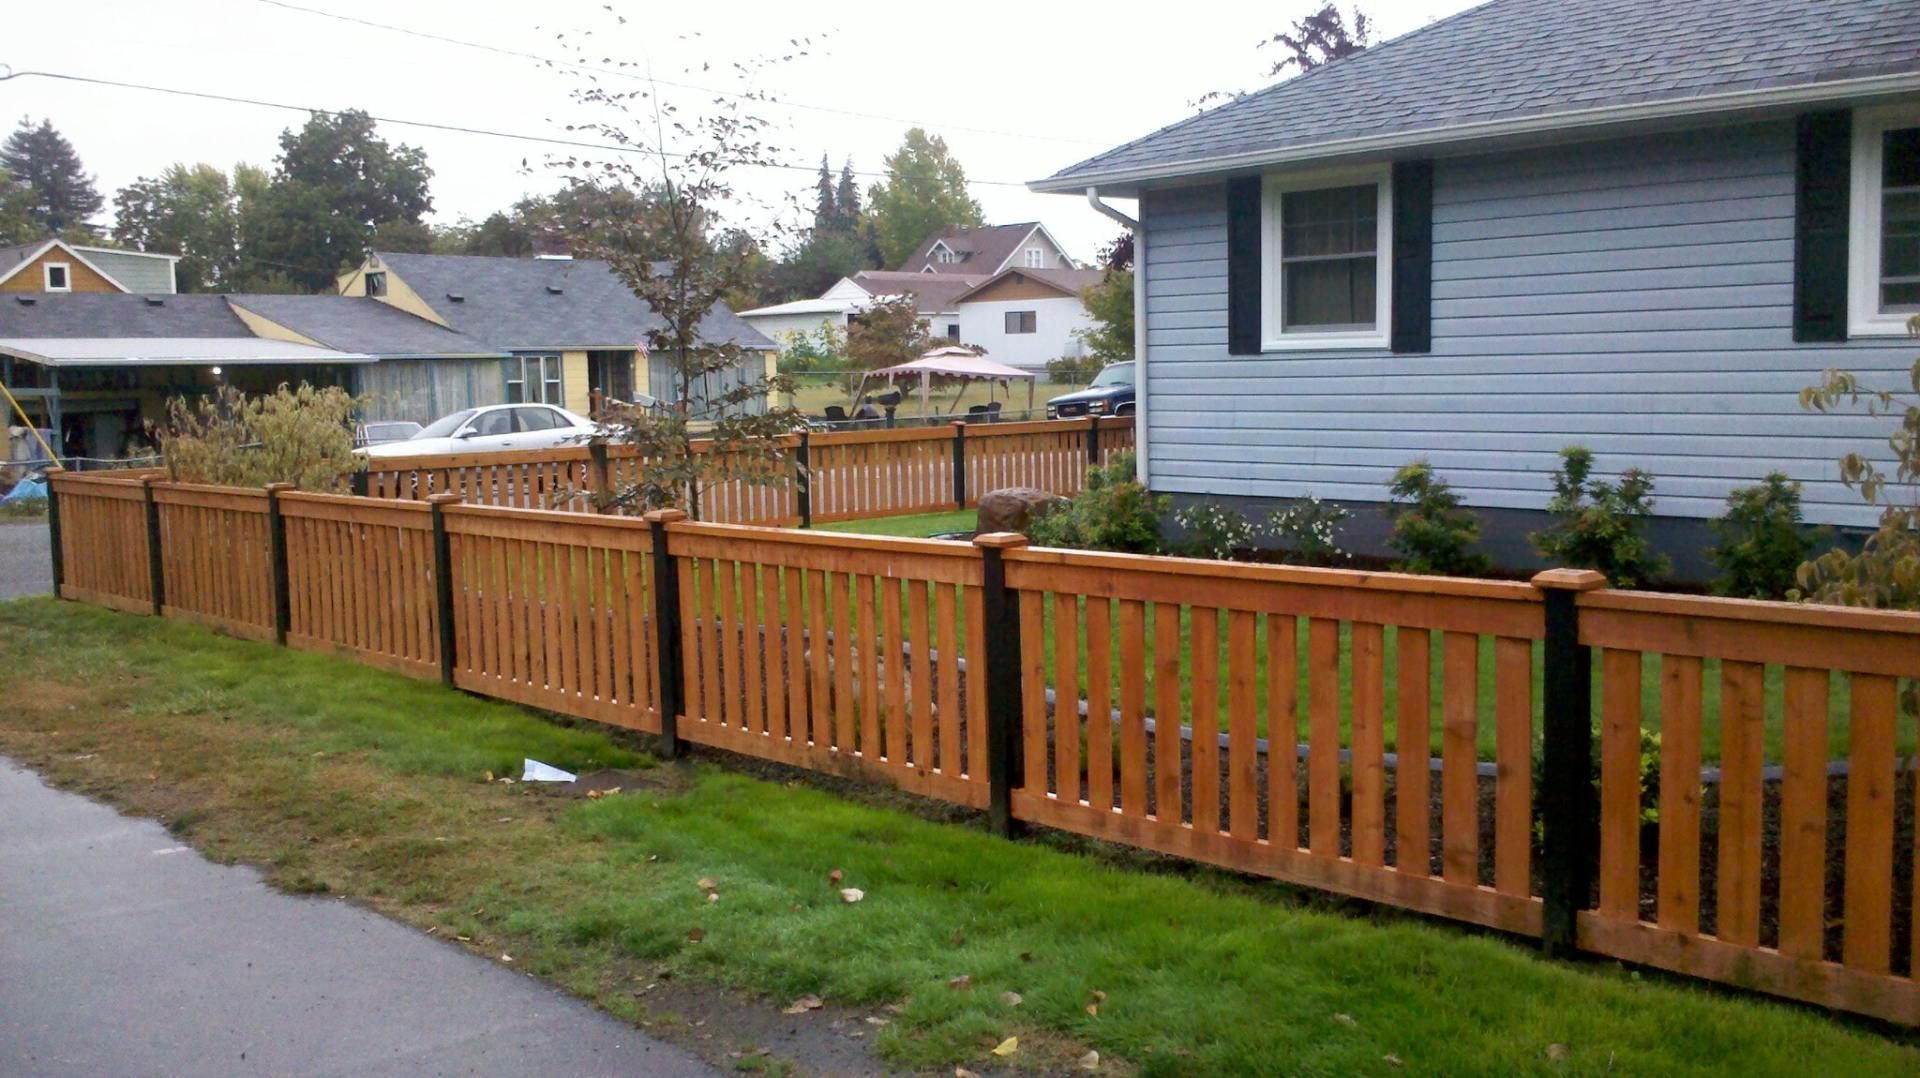 It Would Be Great To Find A Fence Similar To This For My Yard